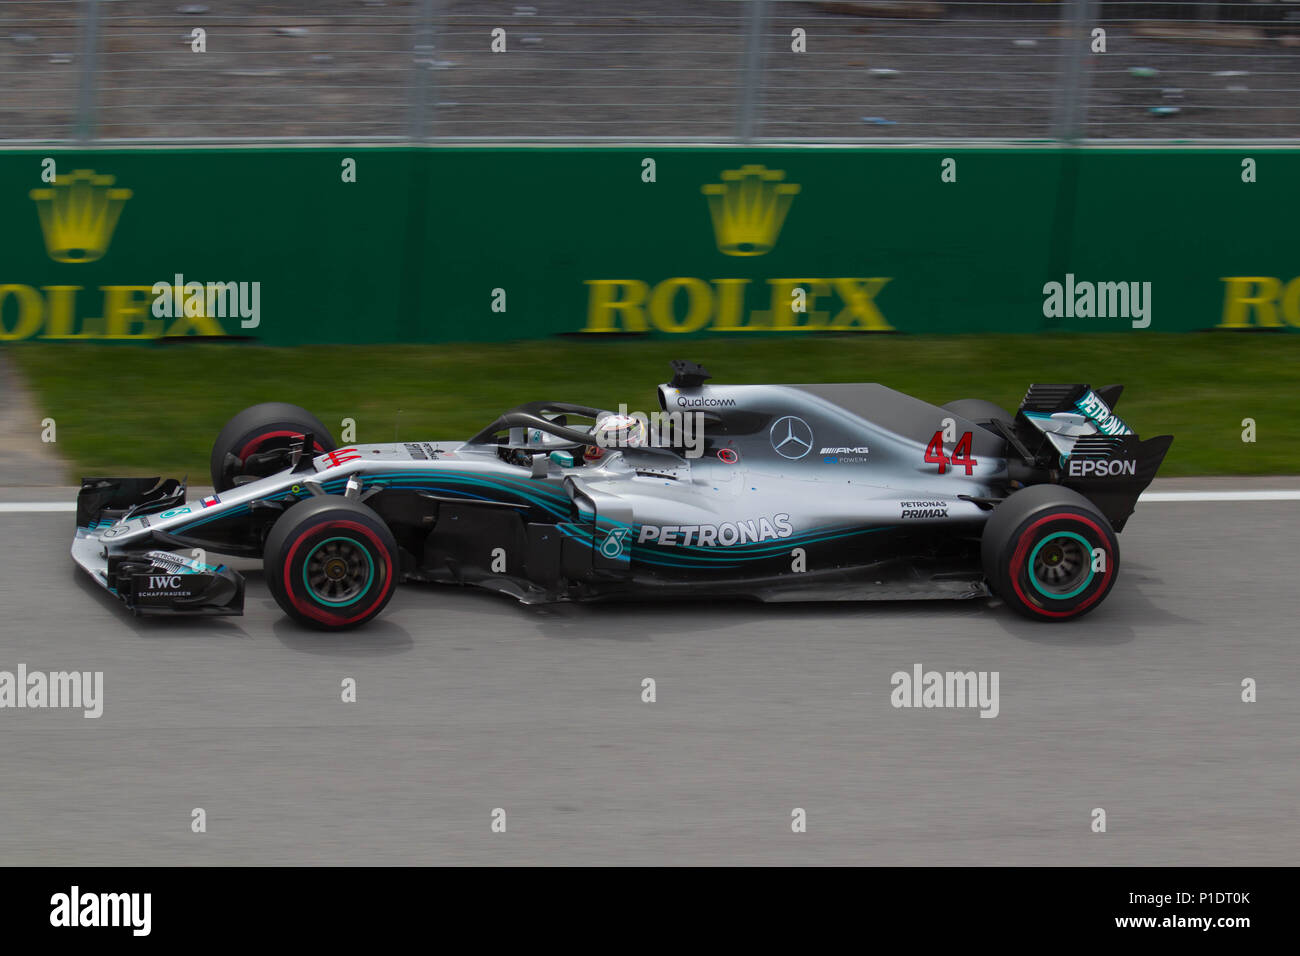 Mercedes AMG EQ W09 2018 F1 car Stock Photo